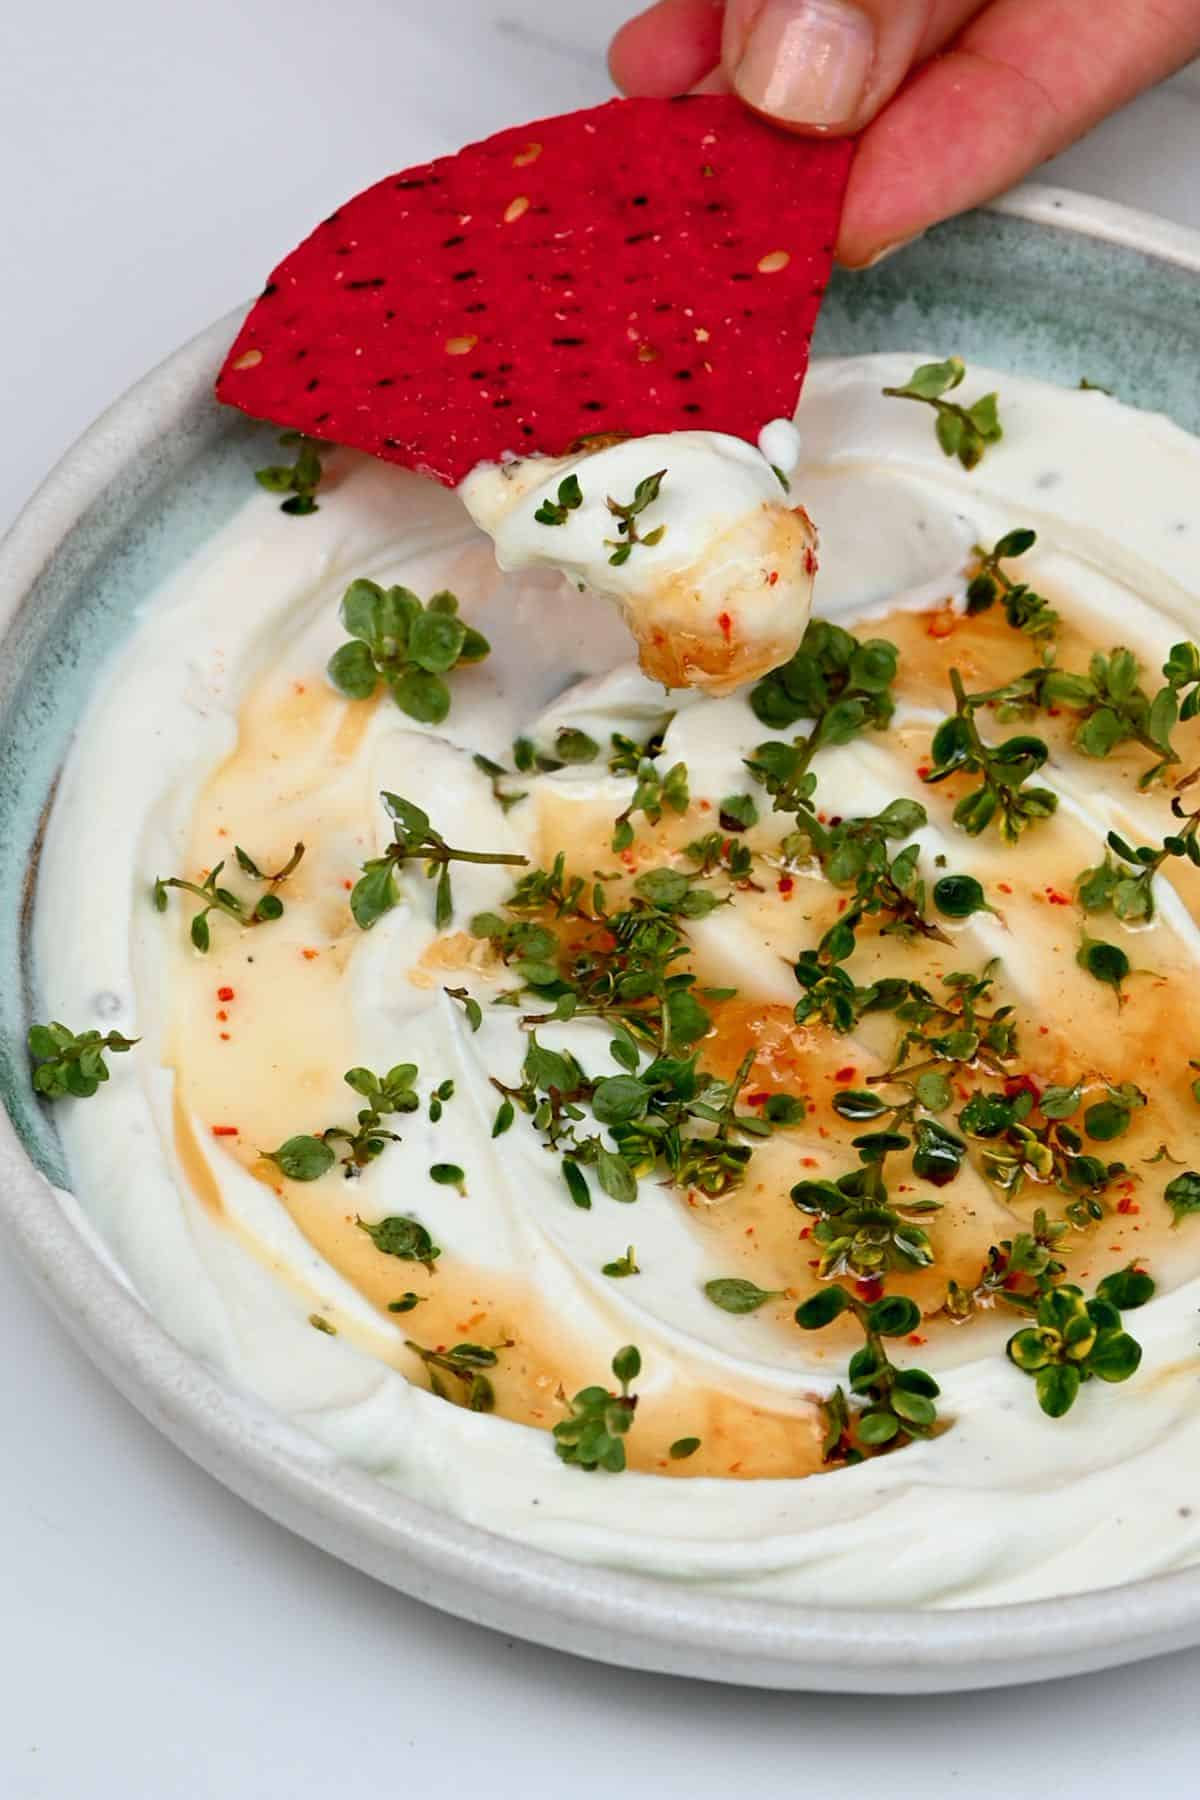 Whipped cheese topped with chili honey and thyme